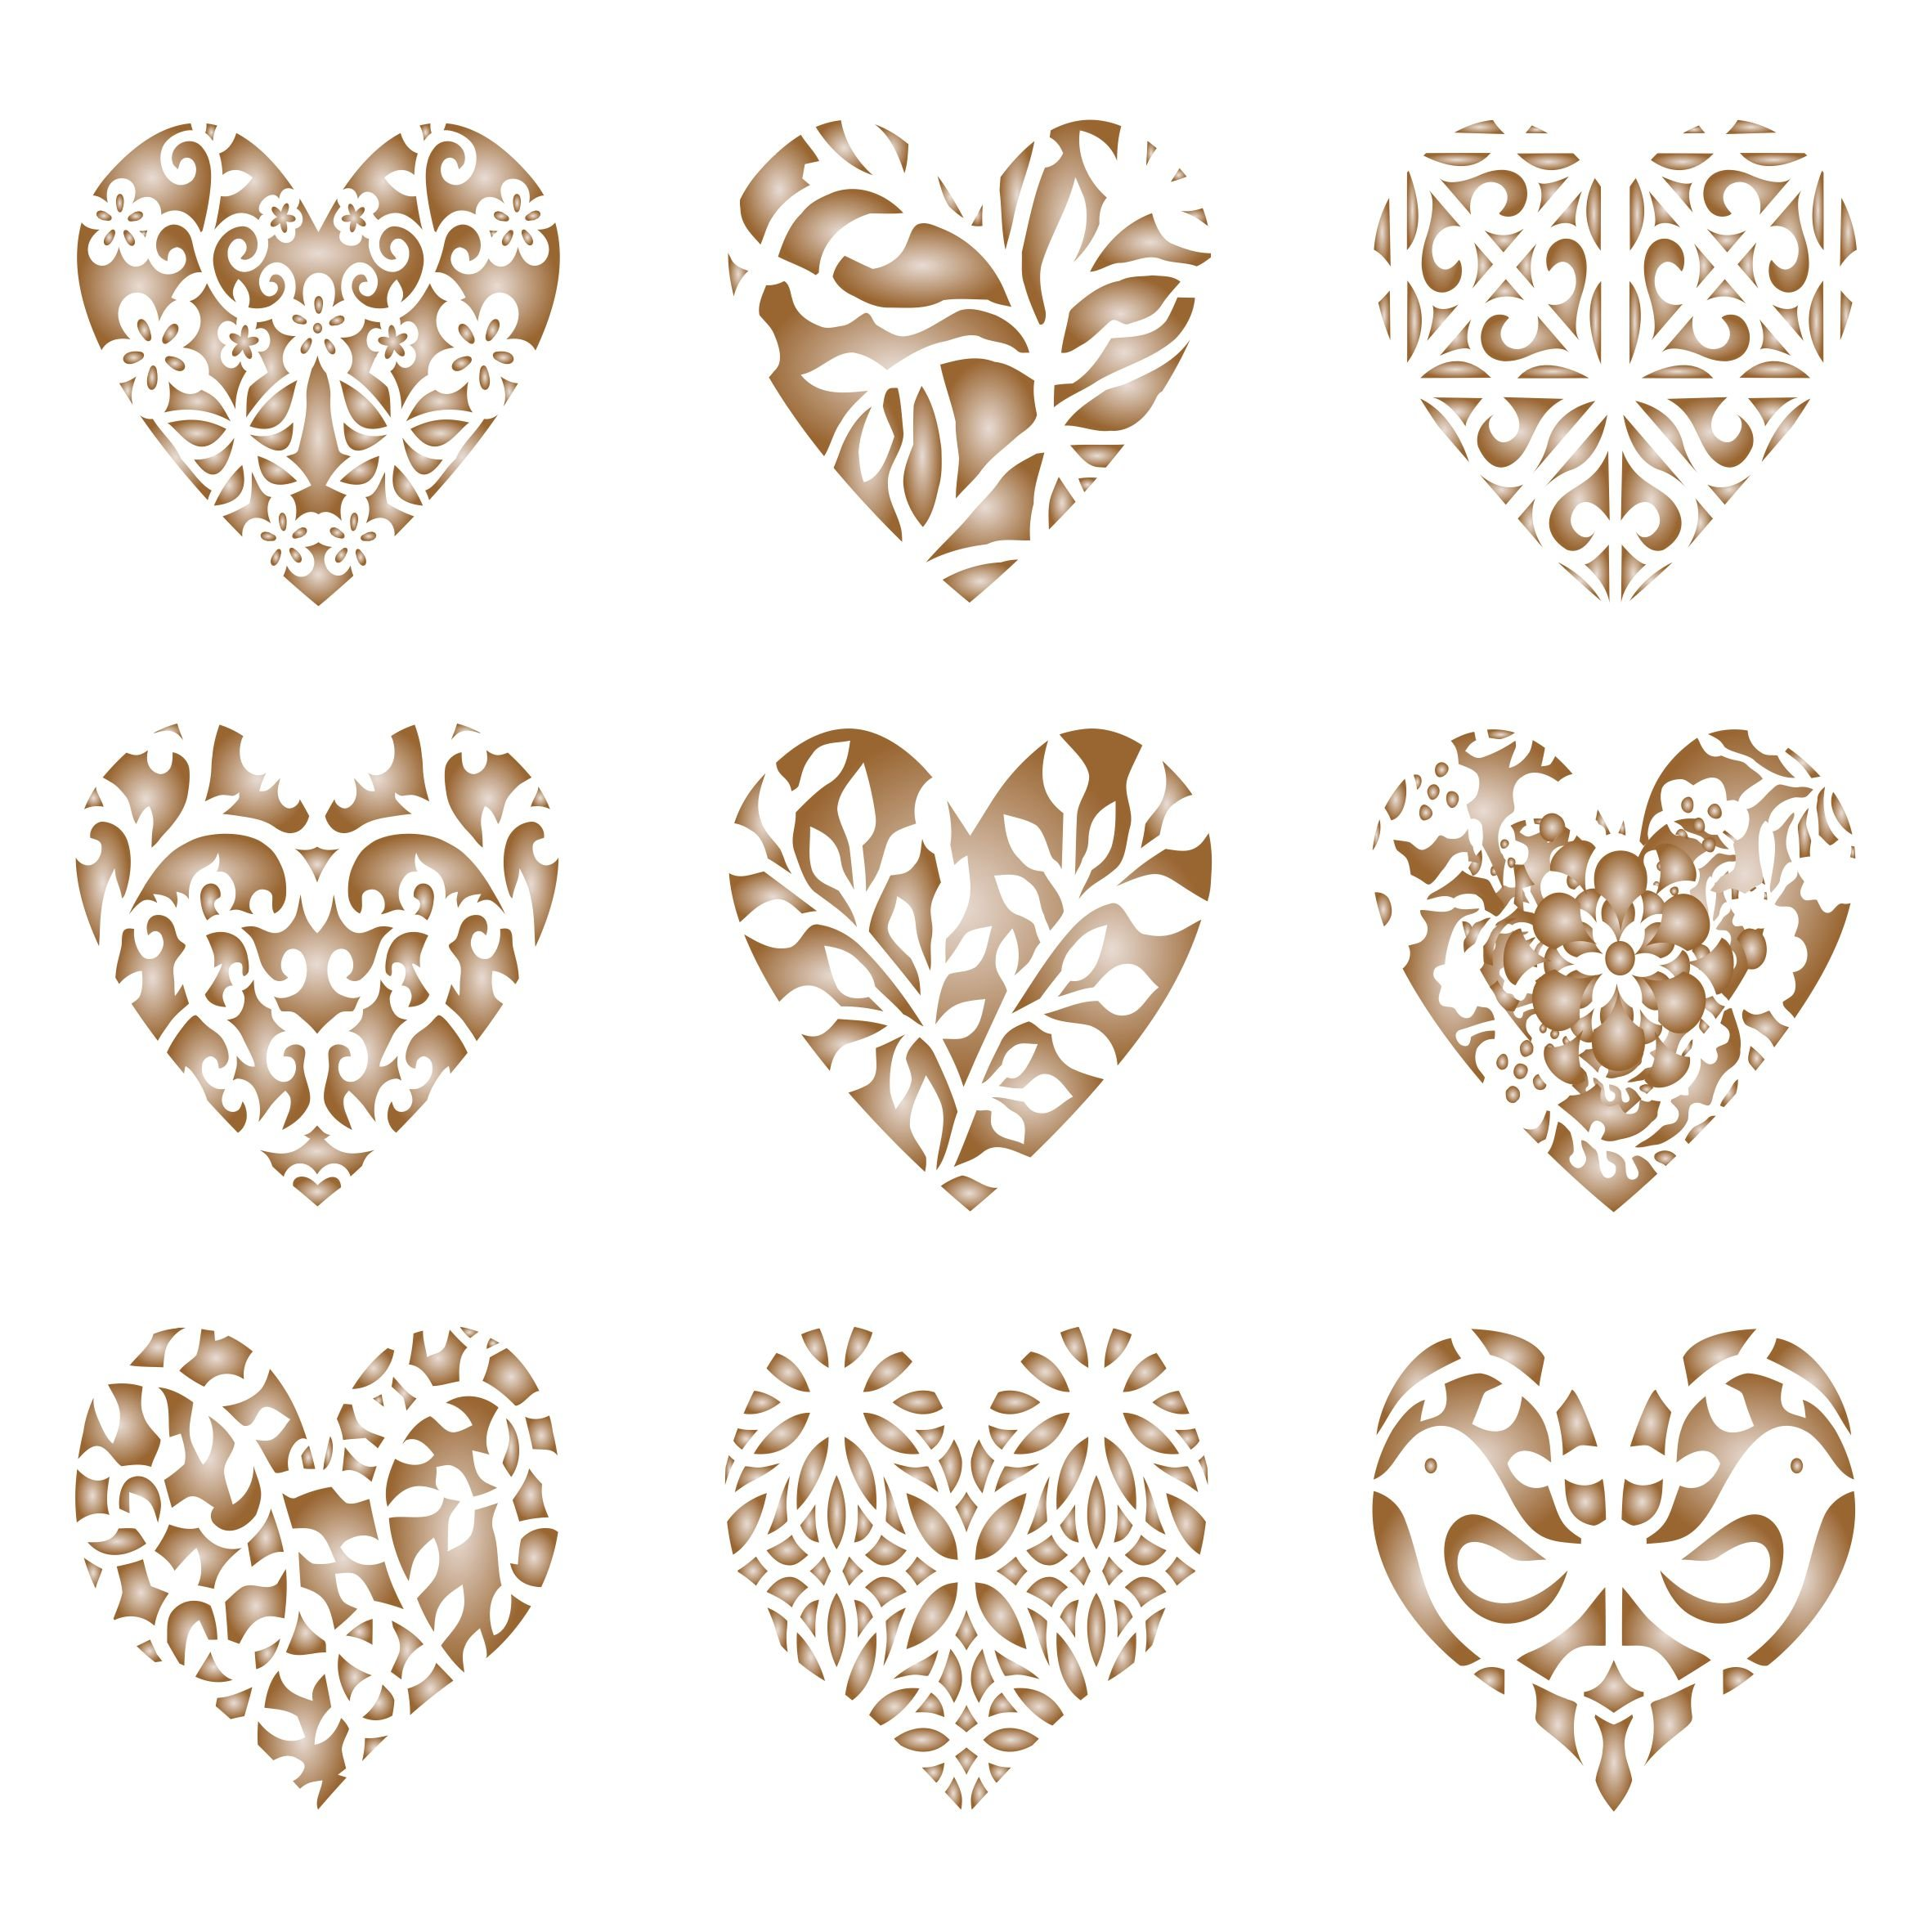 Heart Coffee Set Stencil - 9 Designs - Reusable Barista Stencils for Decorating Cappuccino Coffee Latte Cupcakes Cakes Cookies Scrapbooking Stenciling and more... by Stencils for Walls (Image #4)